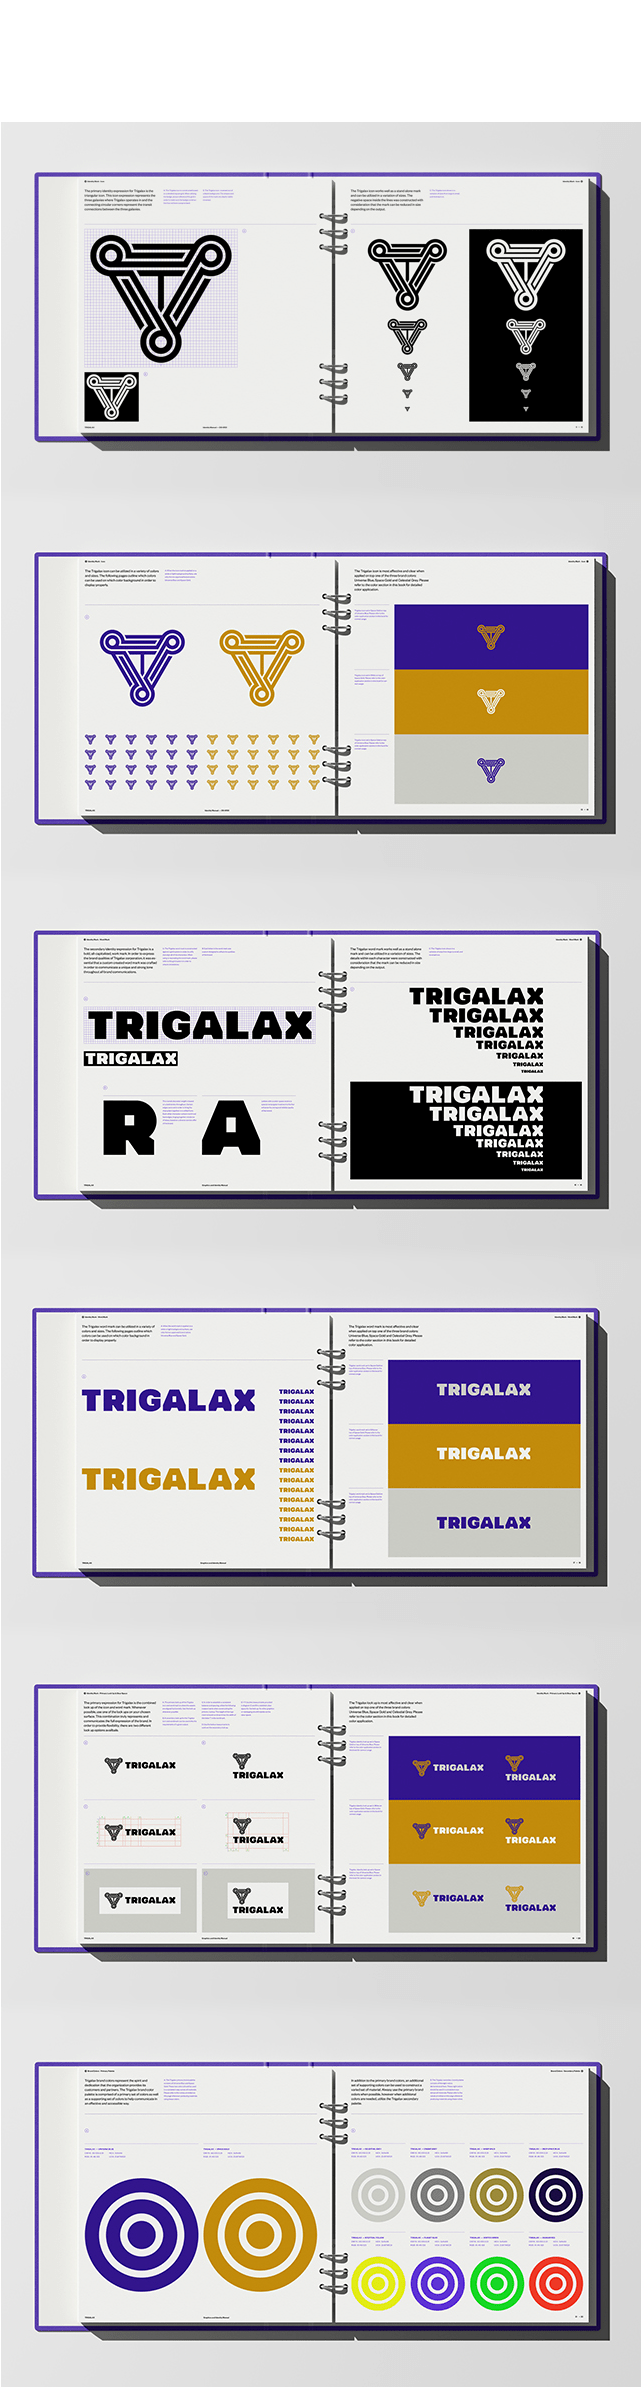 04_Trigalax-Space-Branding-guidelines-02-M